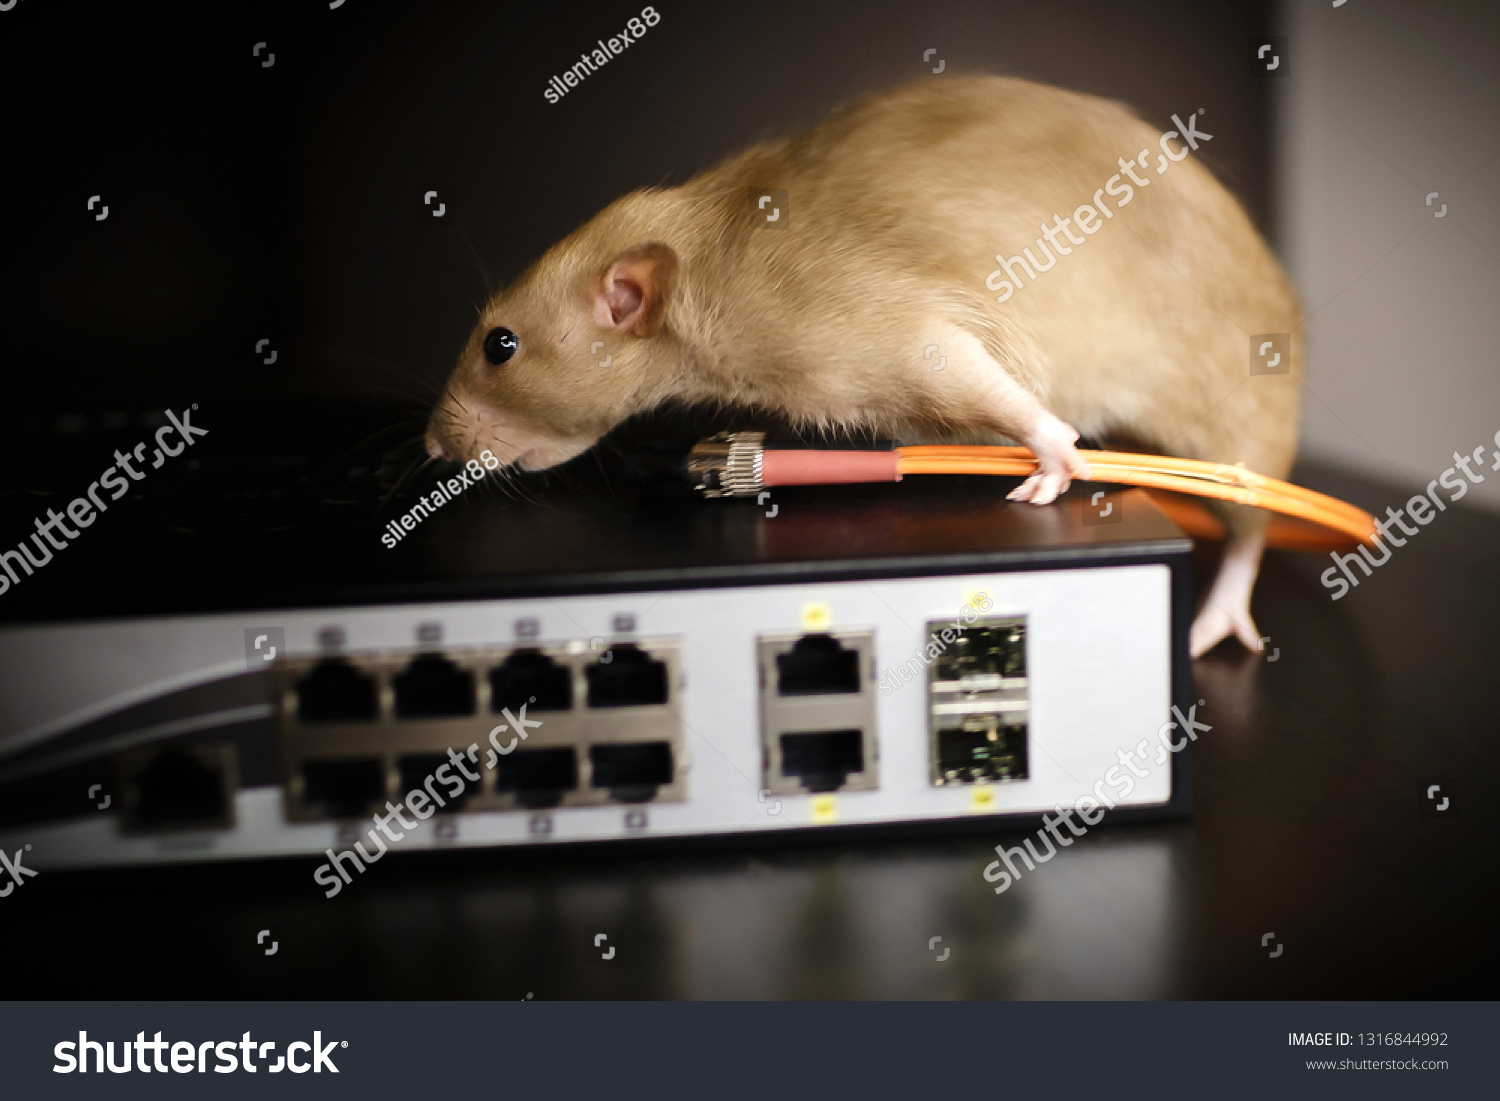 Damaged Wires Internet Connection Rat Gnawed Stock Photo